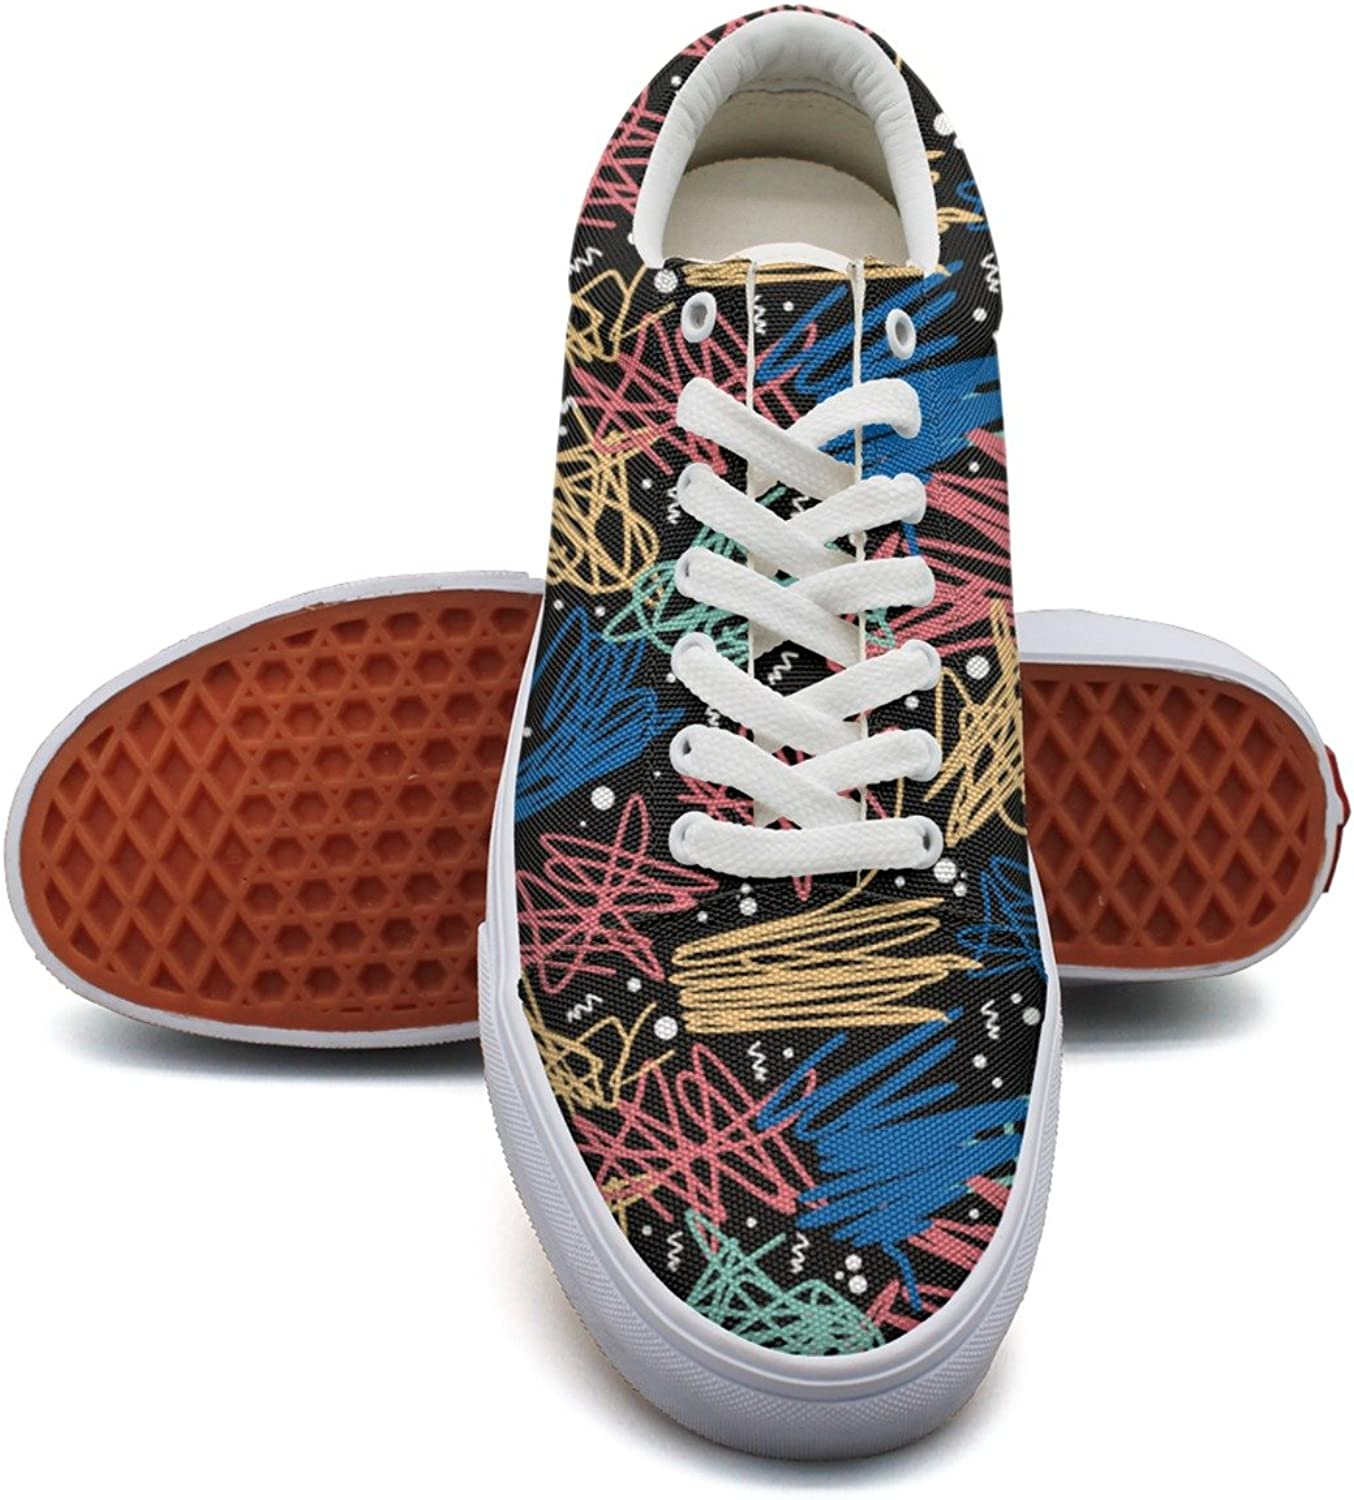 Feenfling How to Draw Graffiti Womens Navy Canvas Deck shoes Low Top Classic Sneakers for Women